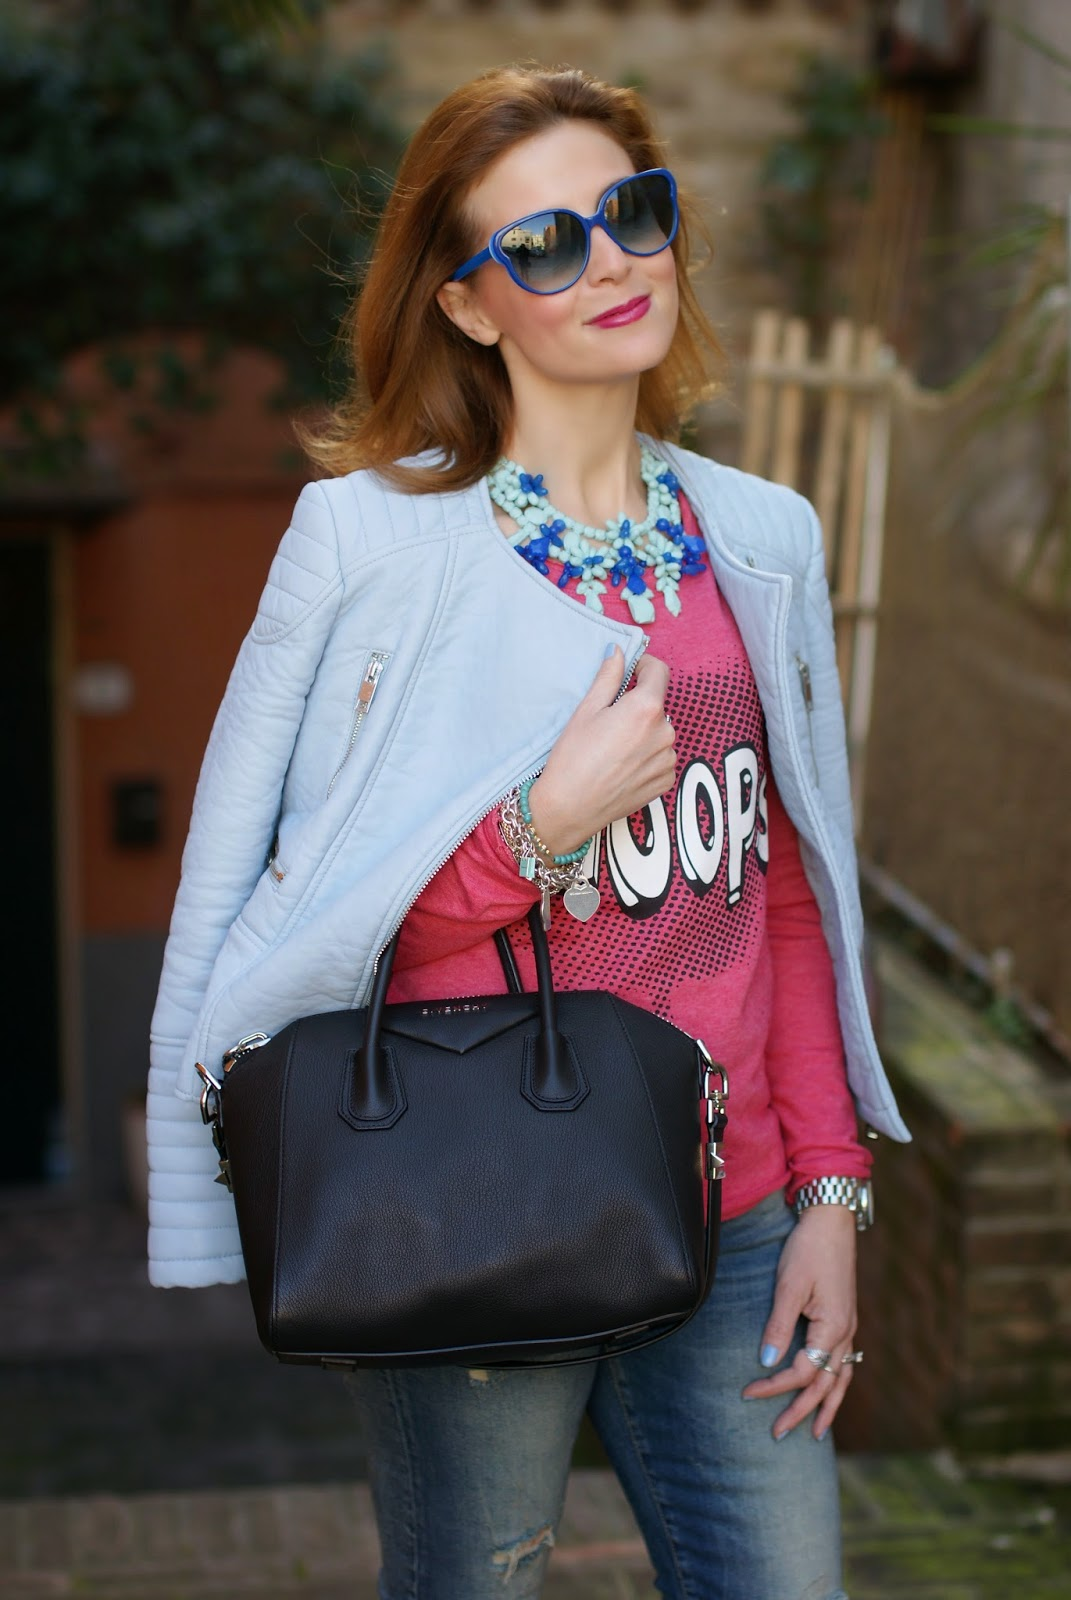 Zara baby blue faux leather biker jacket, desires sweatshirt, giubbotto pelle celeste Zara, Givenchy Antigona bag, Marc by Marc Jacobs blue sunglasses, Fashion and Cookies, fashion blogger